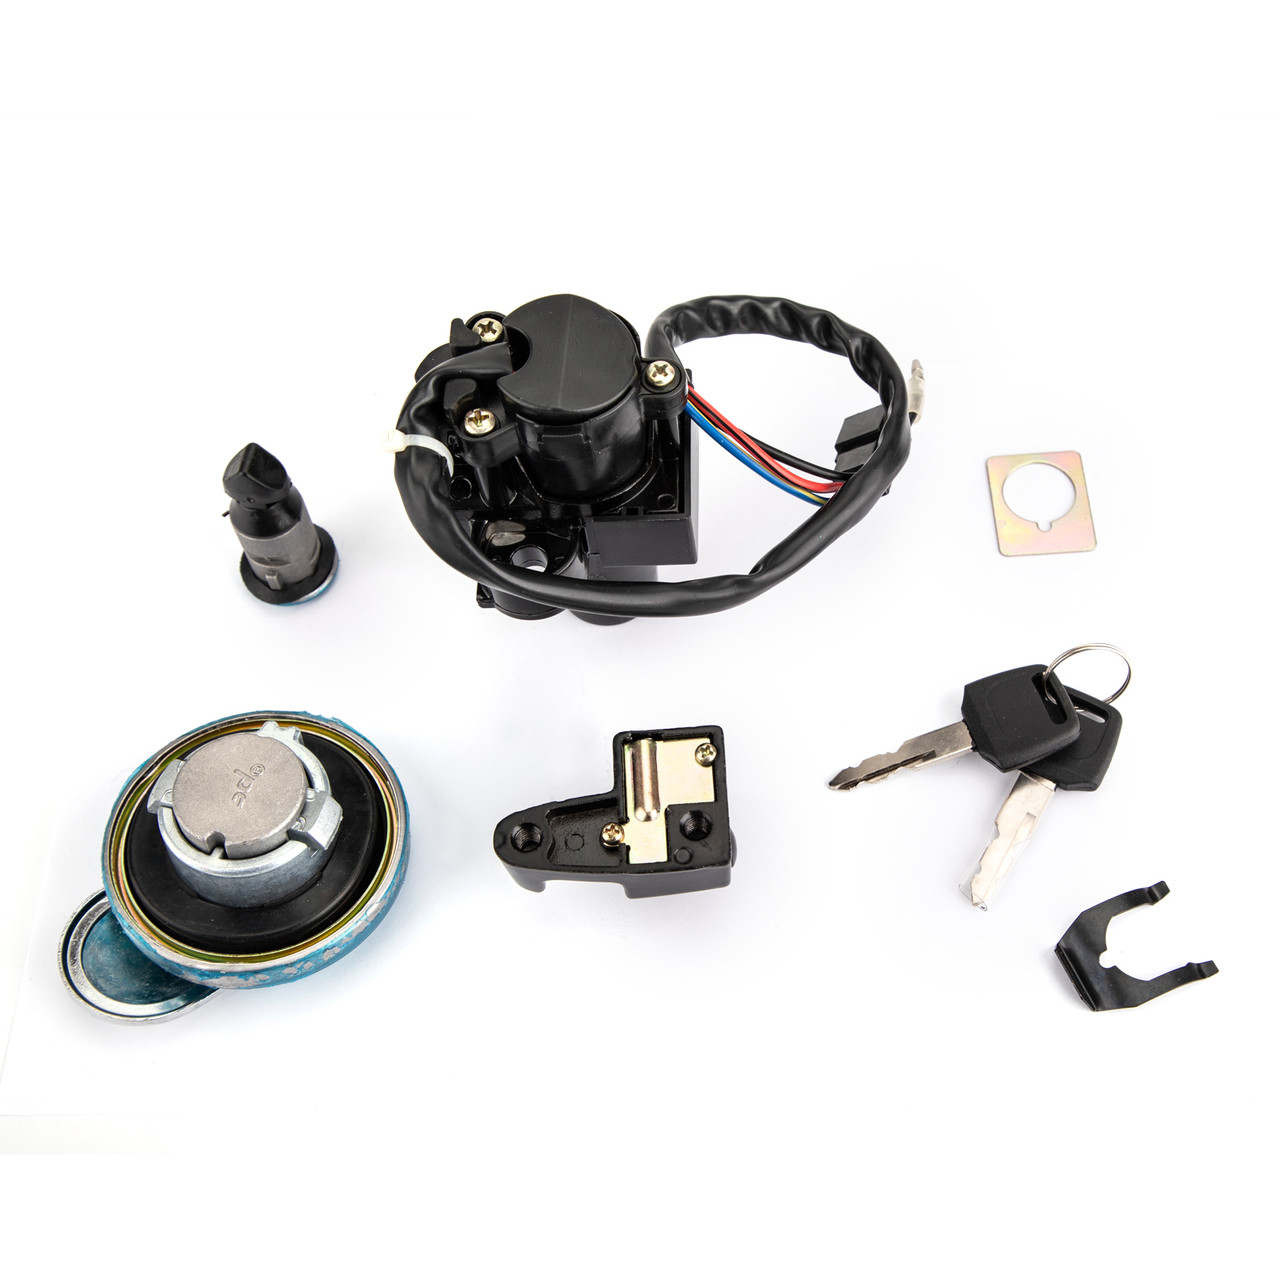 Ignition Switch Lock Fuel Gas Cap Seat Helmet Lock Keys Kit for Honda CL400 1999